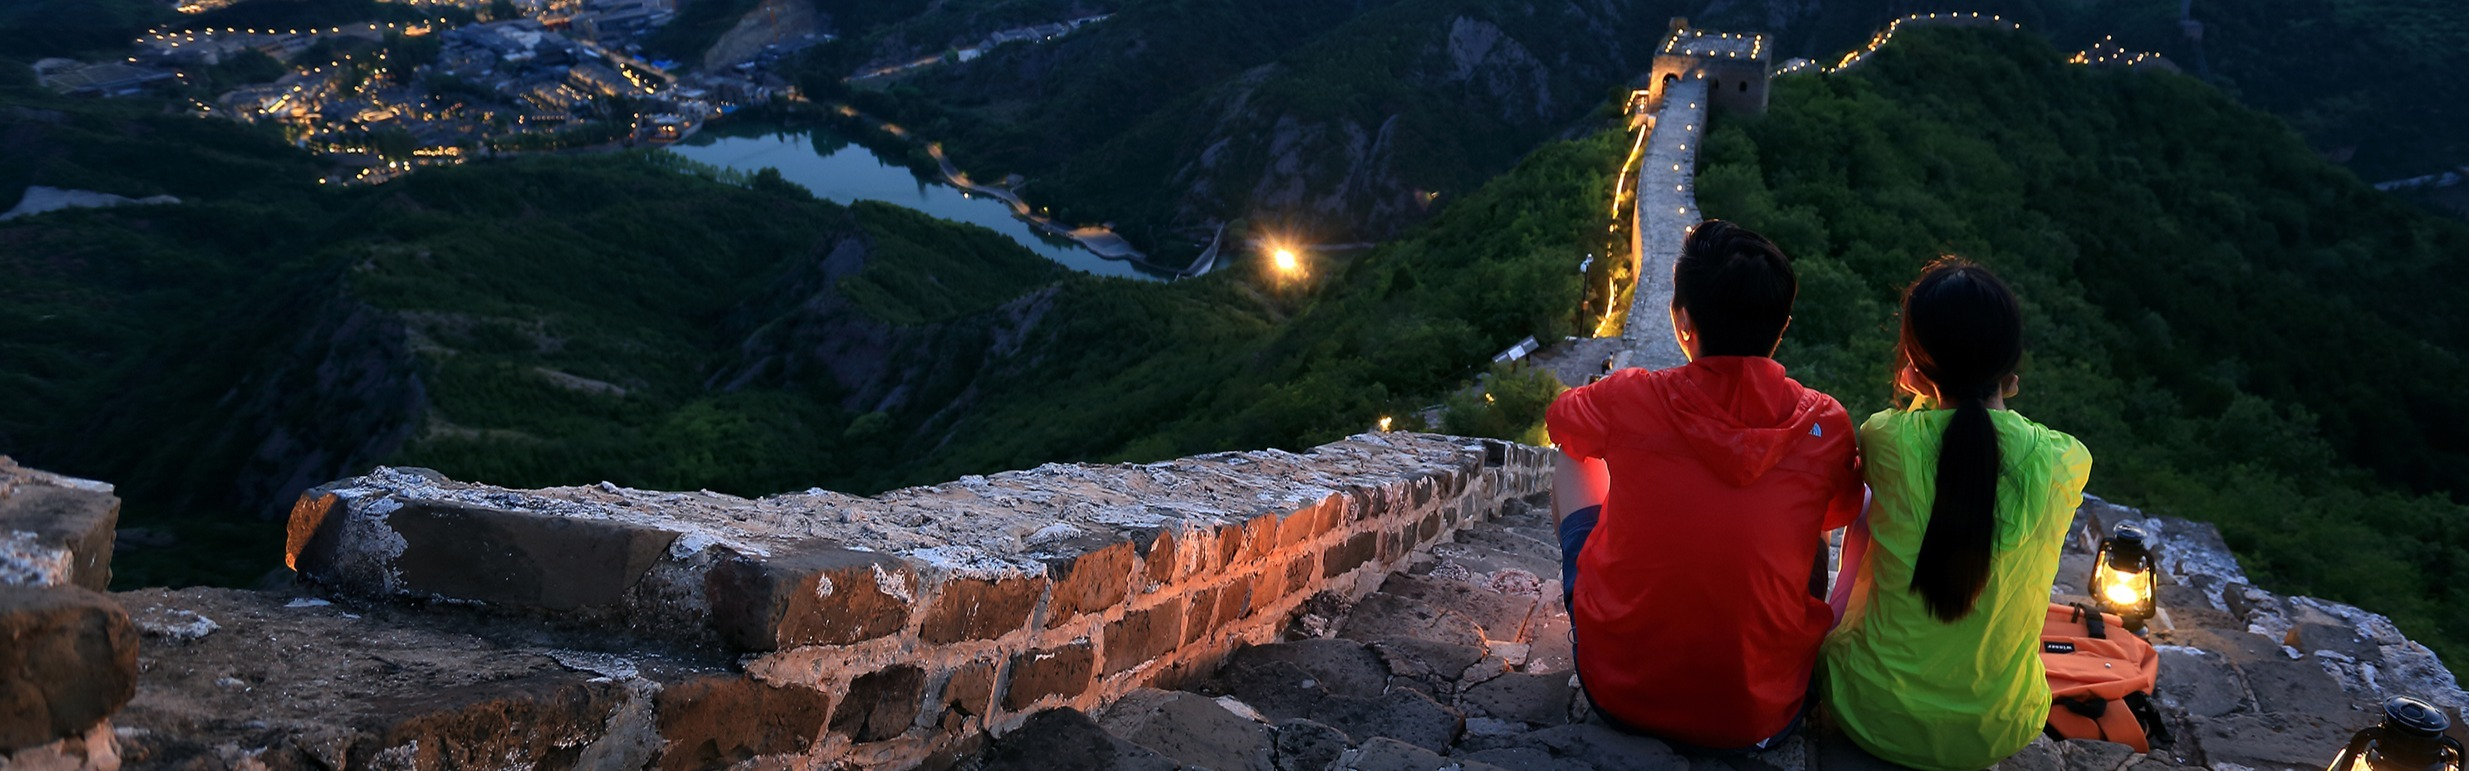 4-Day Beijing Private Tour to Visit the Great Wall at Night